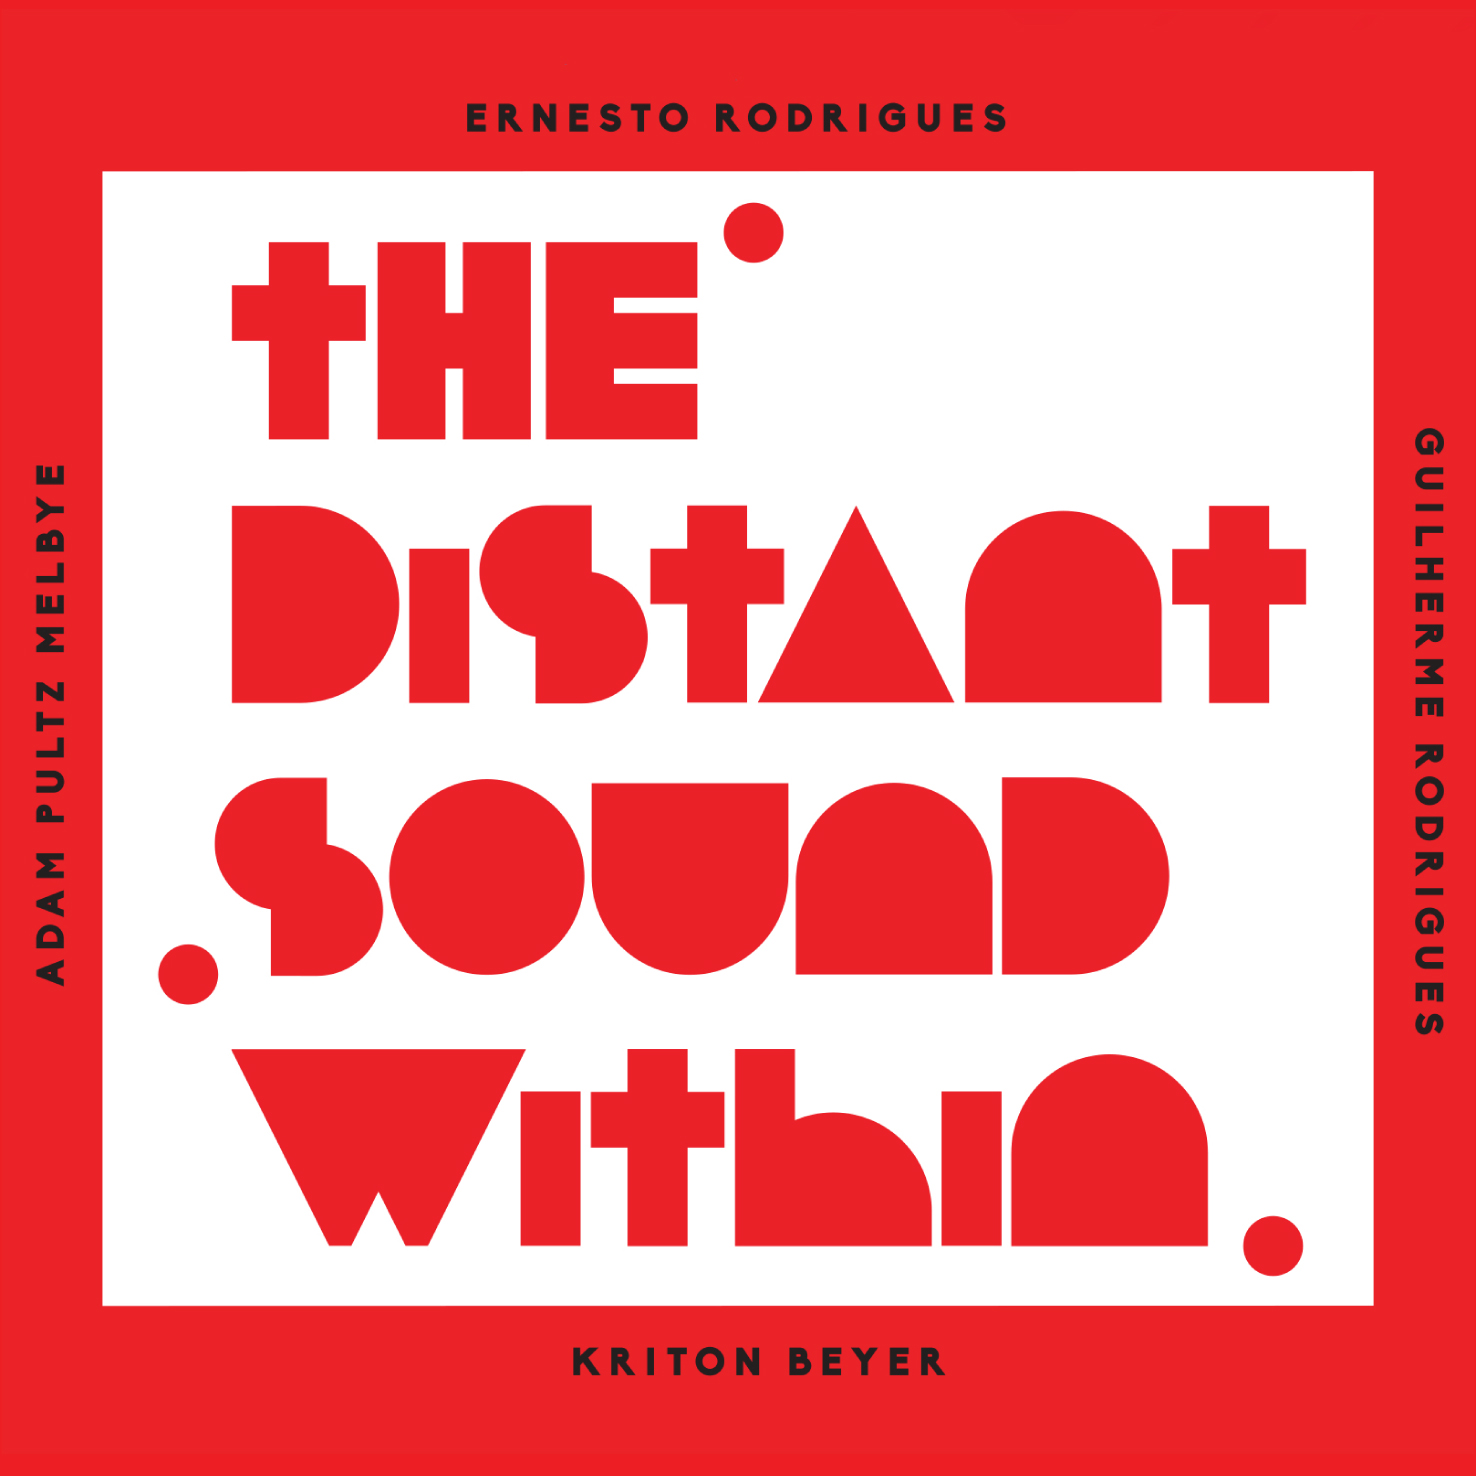 the distant sound within - Ernesto Rodrigues / Guilherme Rodrigues / Adam Pultz Melbye / Kriton Beyer